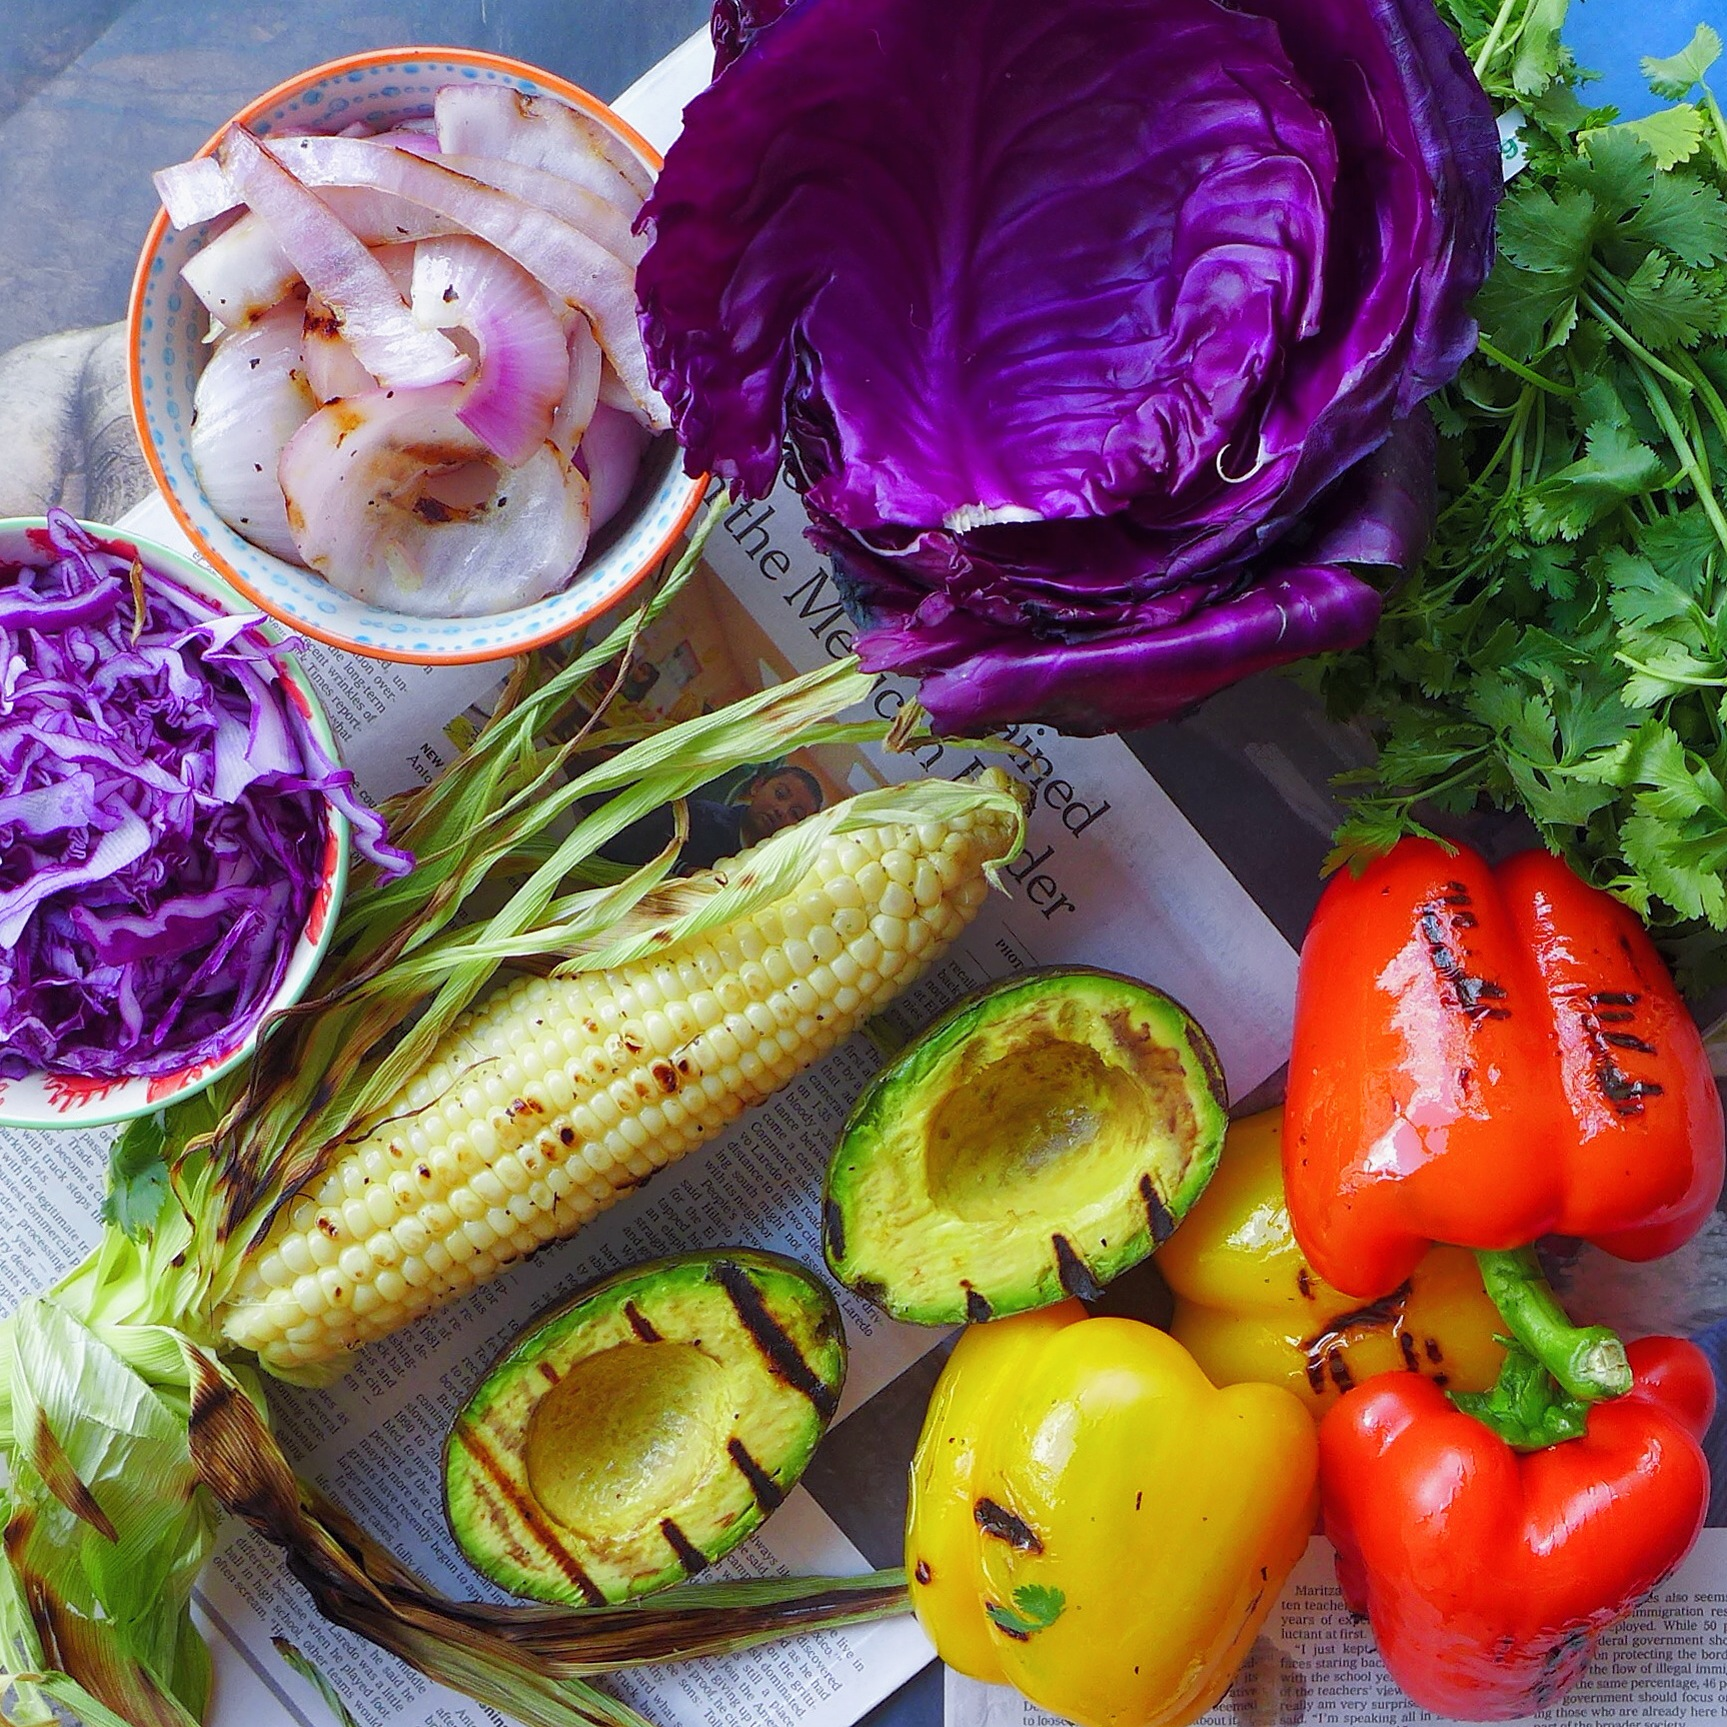 Red Cabbage Tacos + Salad with Grilled Veggies, vegan // inmybowl.com